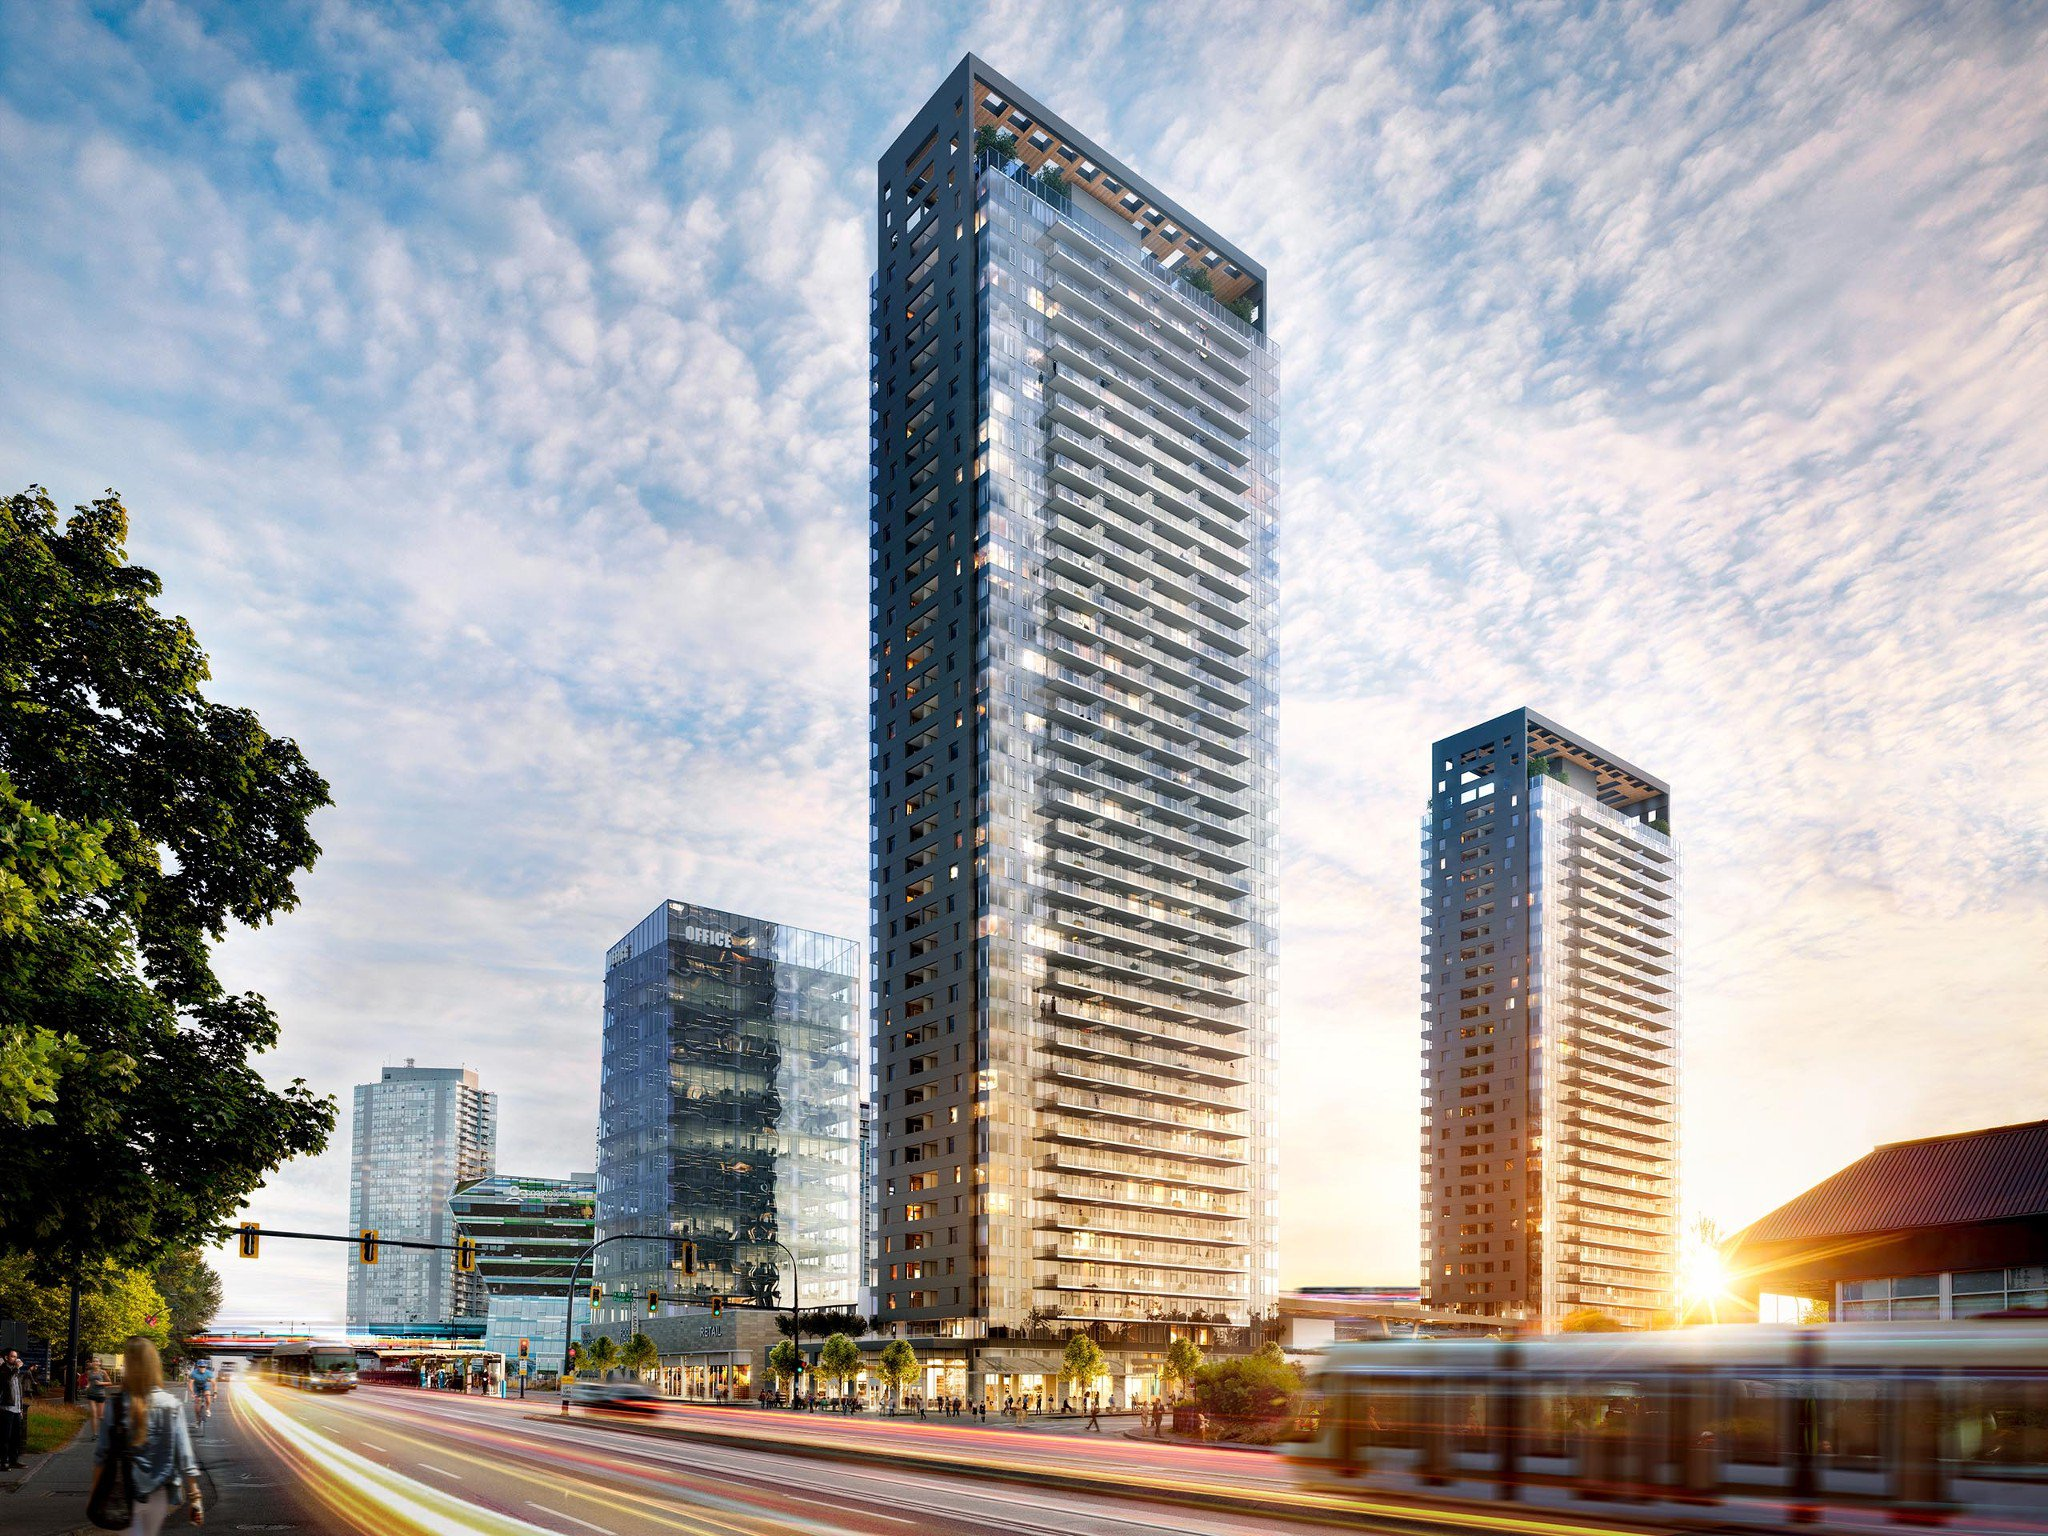 Main Photo: #803 at KING GEORGE HUB by PCI in : Surrey City Centre Condo for sale (Surrey)